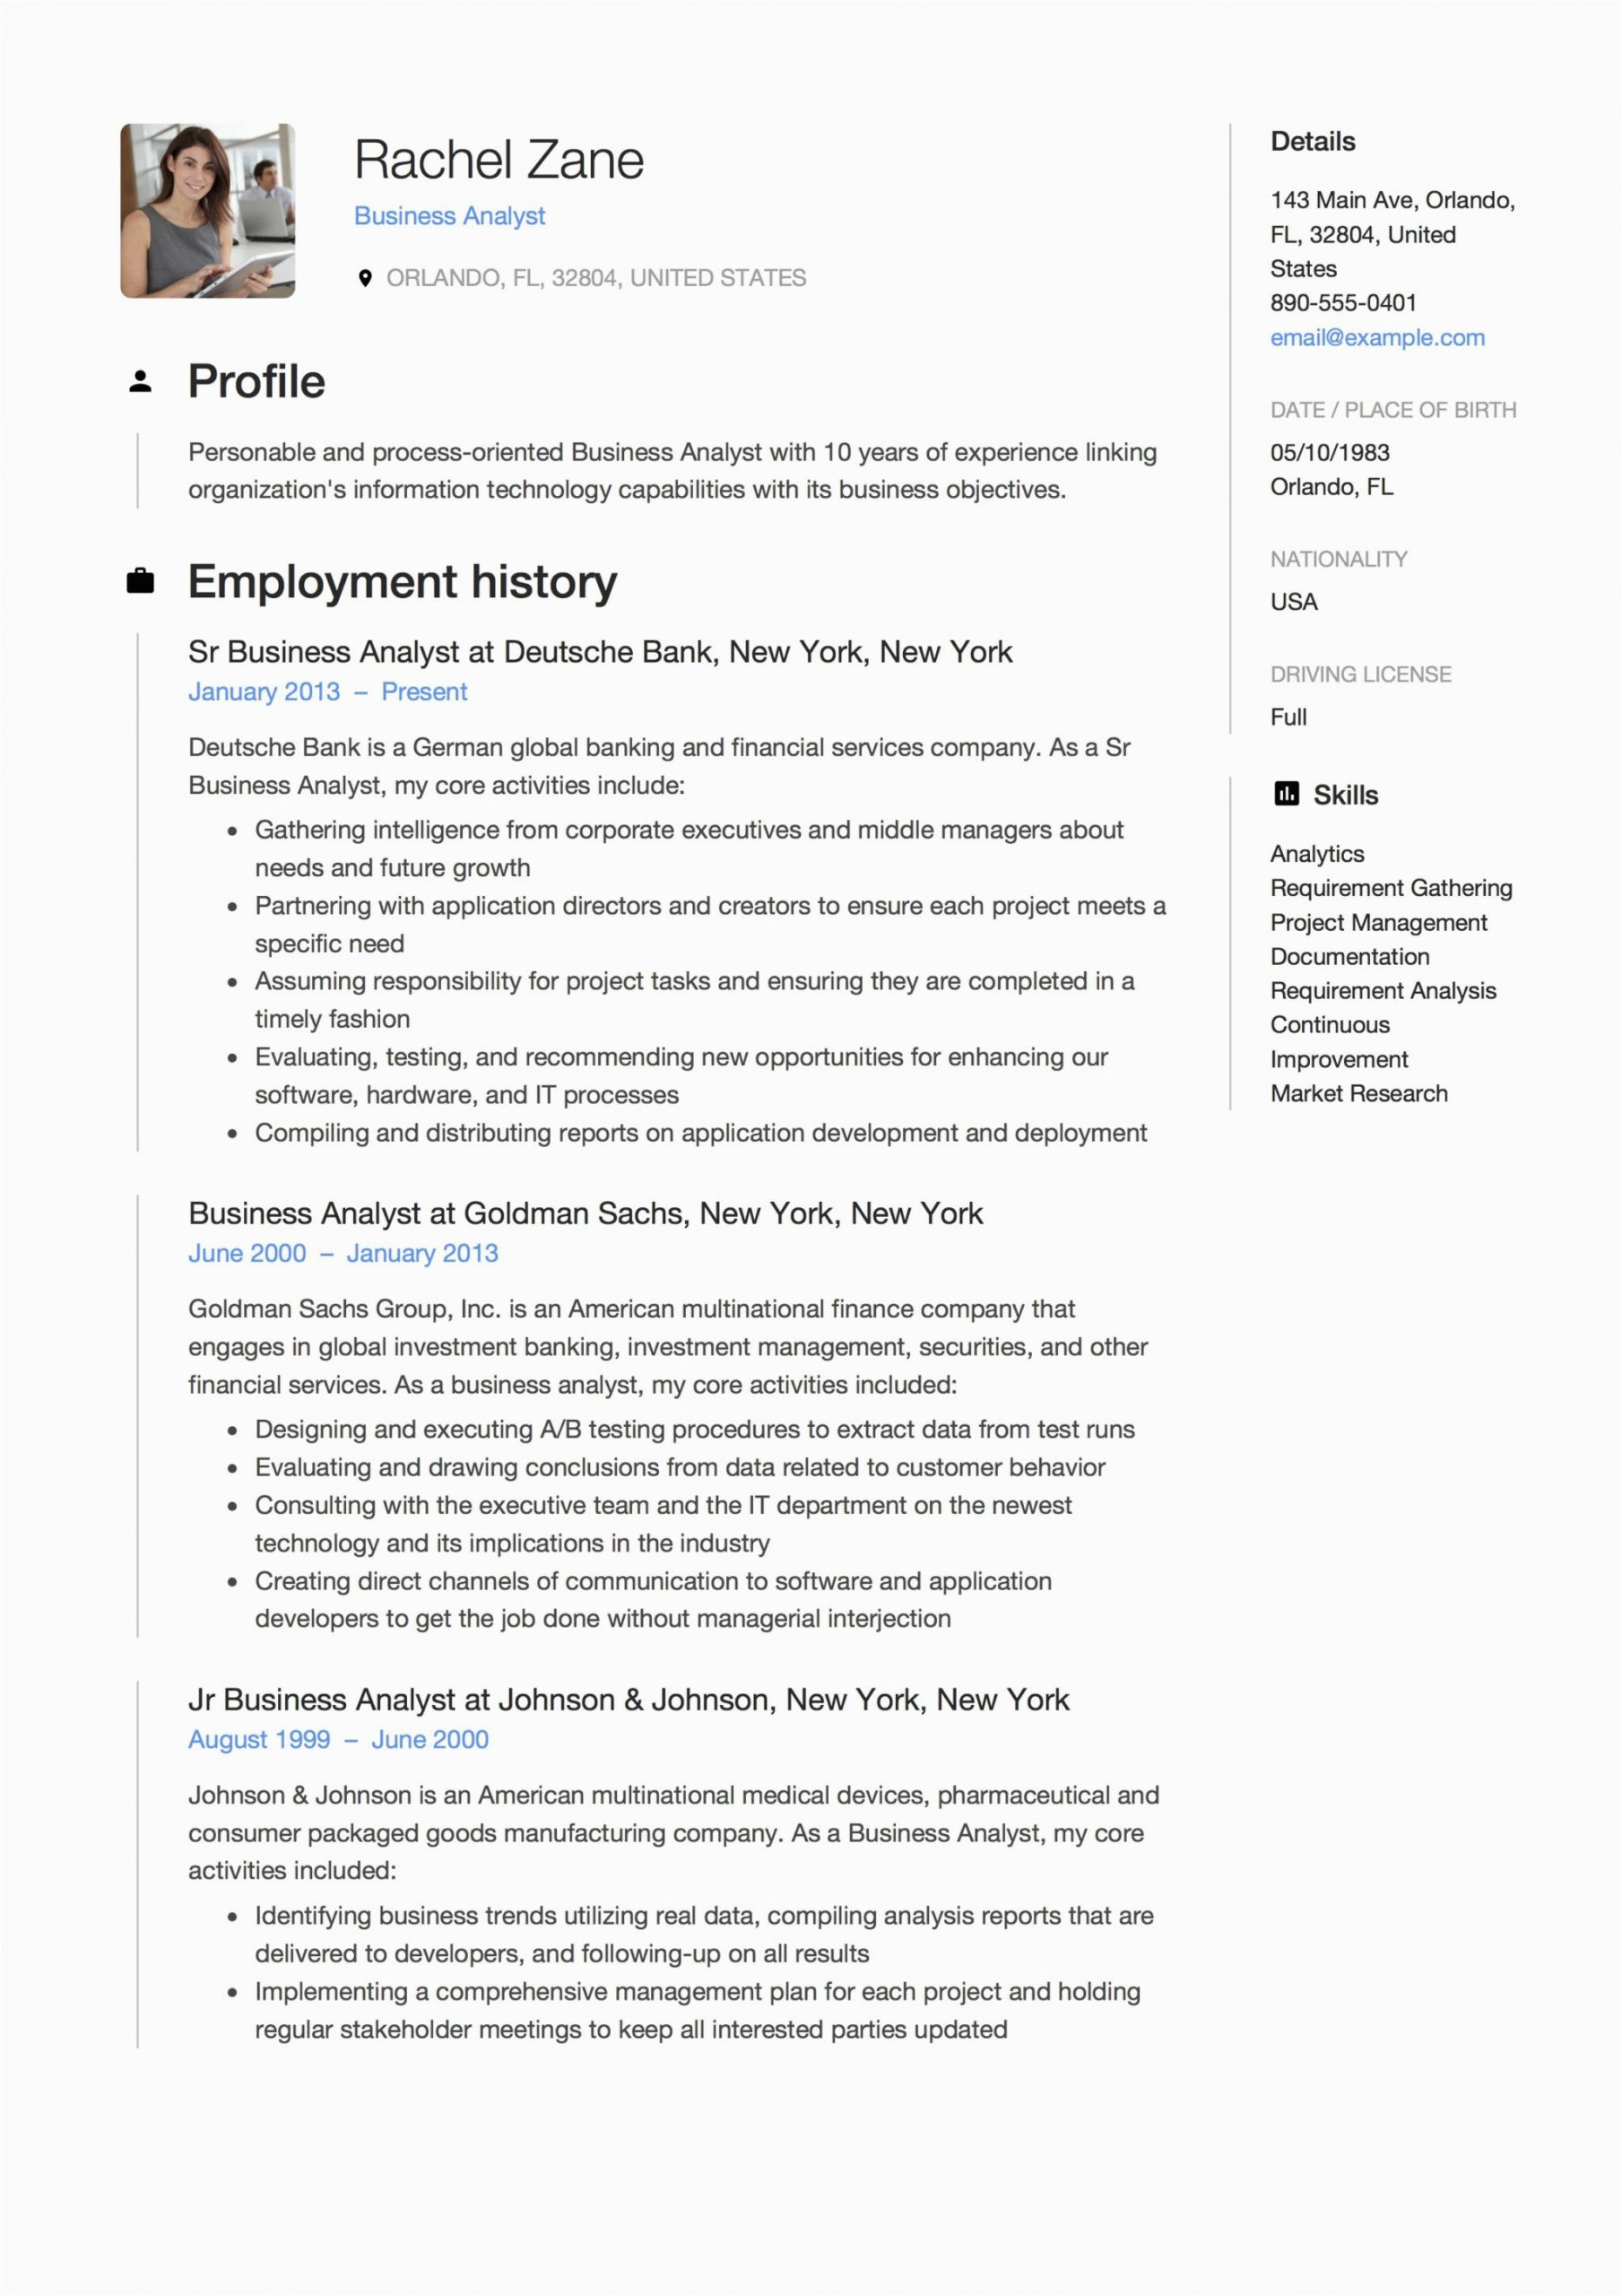 Sample Resume for Experienced Business Analyst Business Analyst Resume & Guide 12 Templates